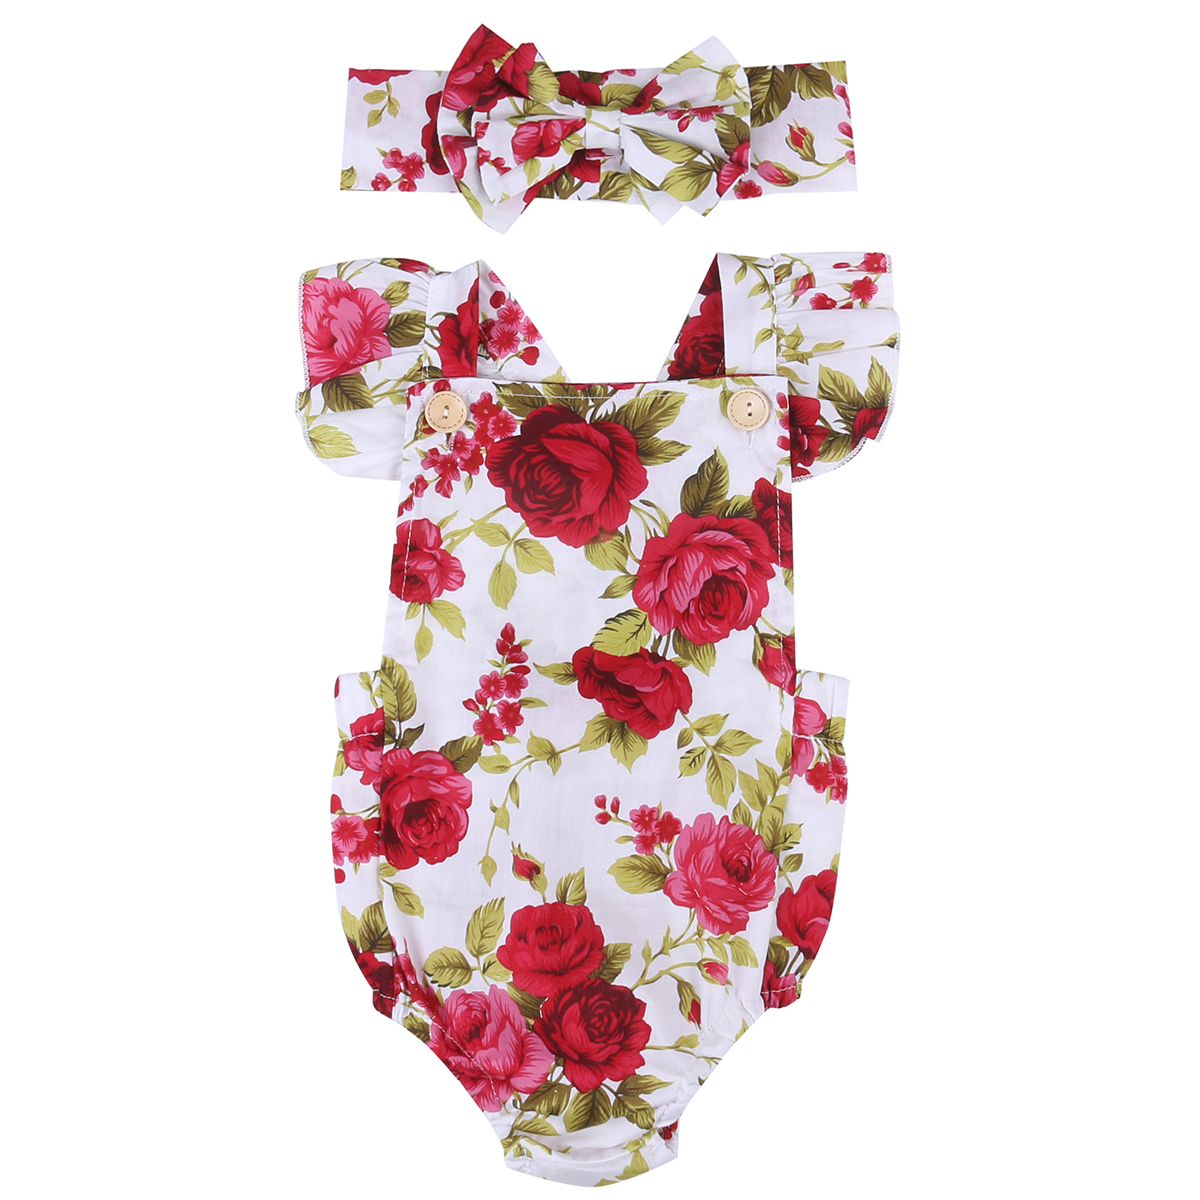 2017 Floral Baby Romper Newborn Baby Girl Clothes Ruffles Sleeve Bodysuit +Headband 2pcs Outfit Bebek Giyim Sunsuit 0-24M 3pcs newborn baby girl clothes set long sleeve letter print cotton romper bodysuit floral long pant headband outfit bebek giyim